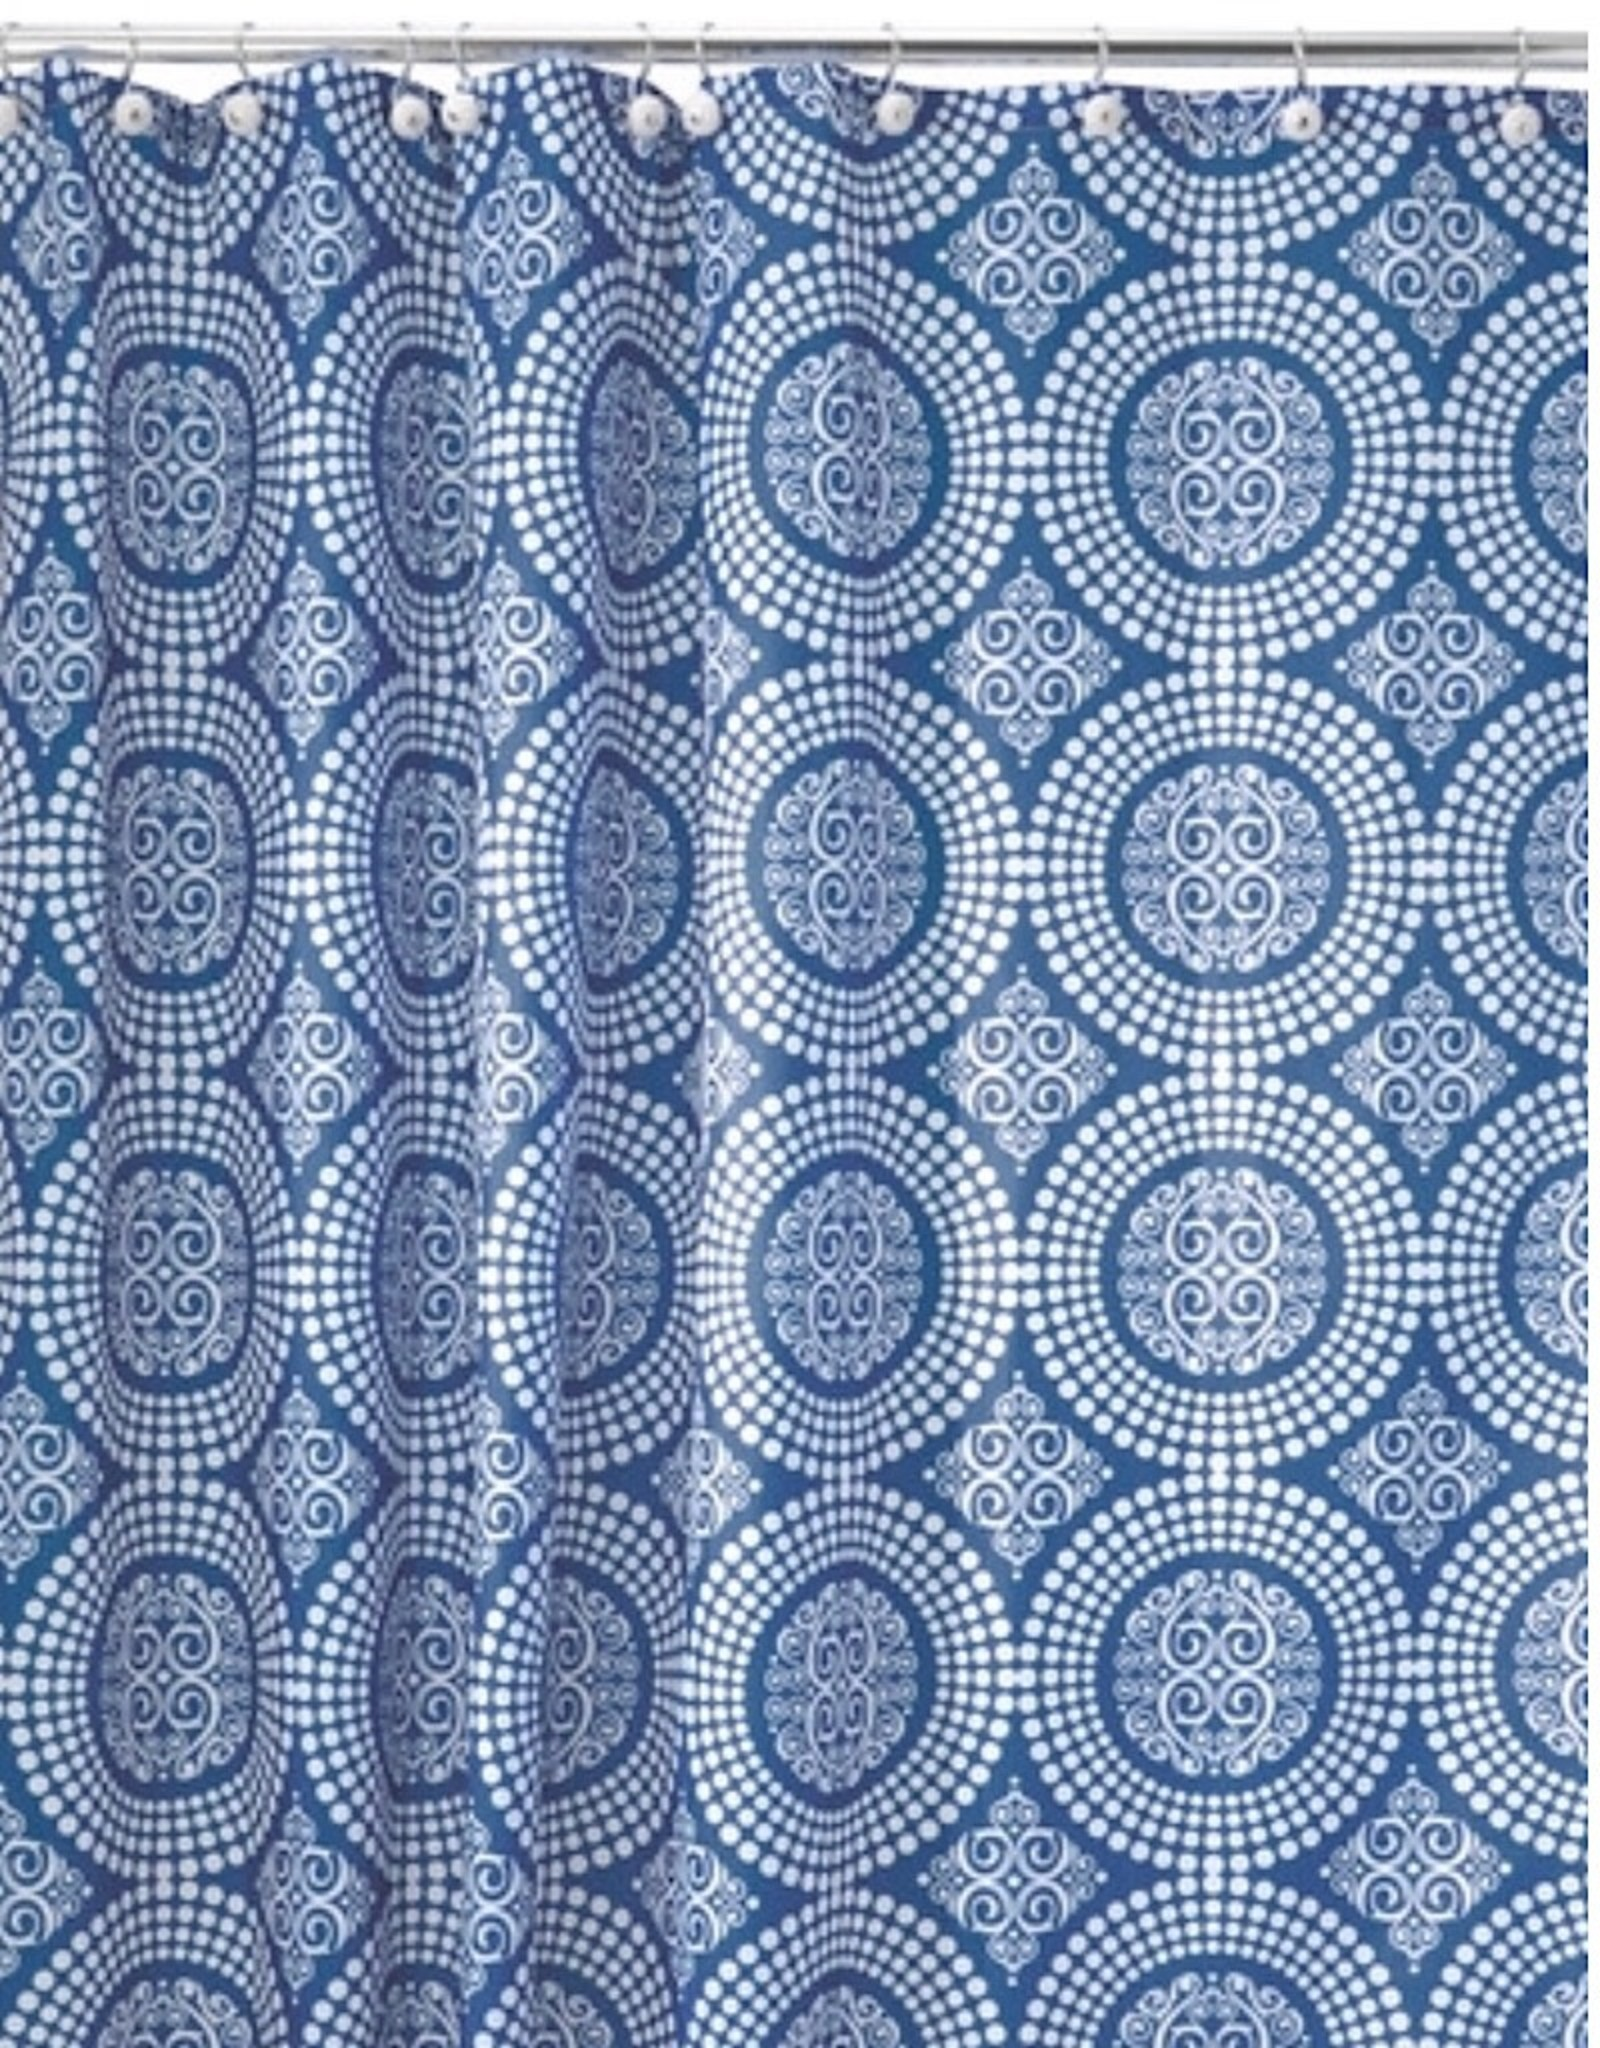 41320 Shower Curtain Medallion SC White and Blue